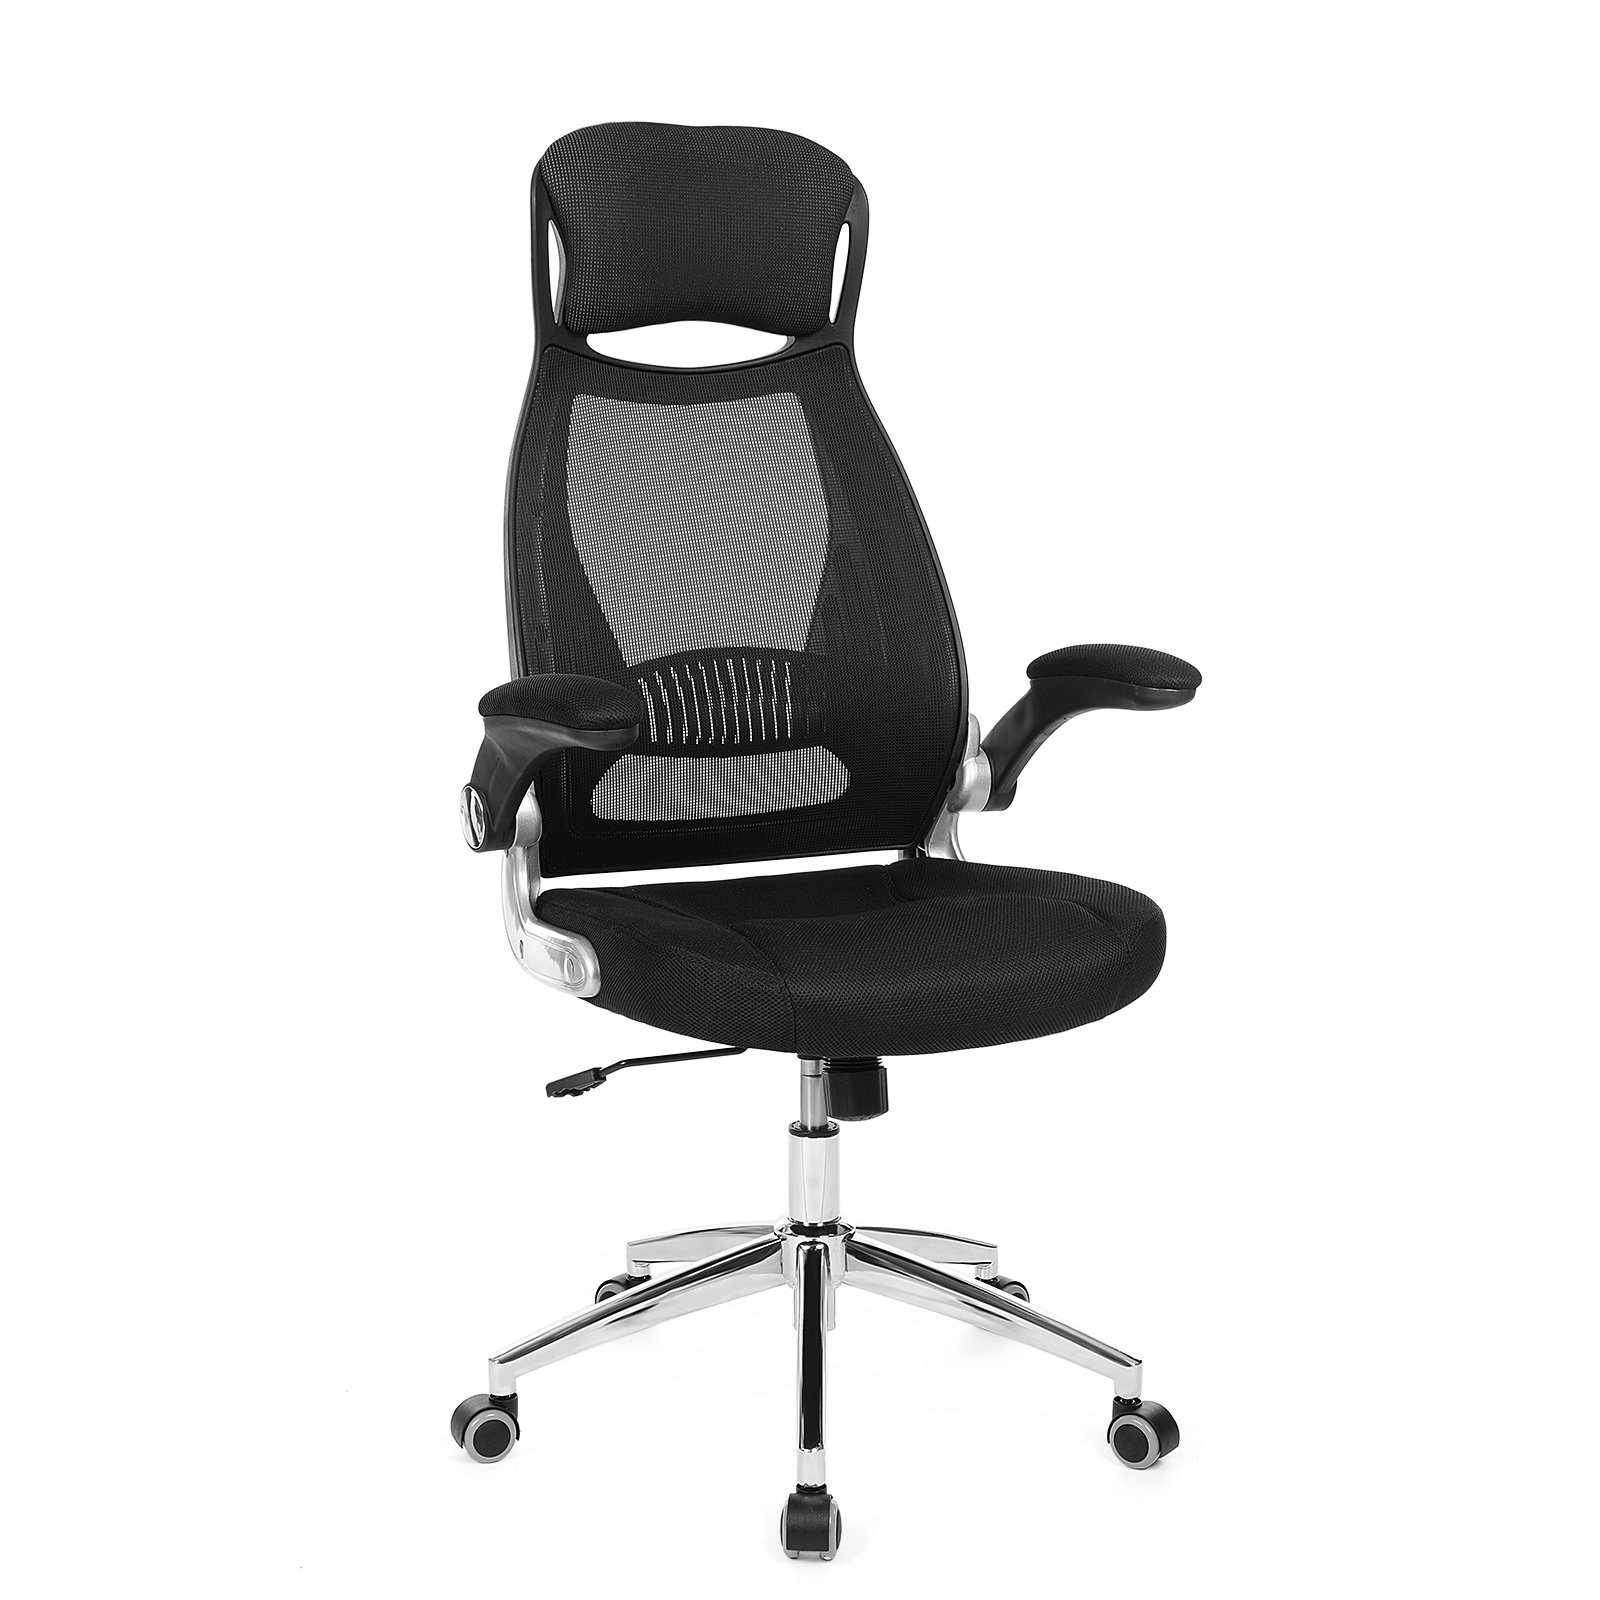 SONGMICS Mesh Office Chair with Backrest, Headrest, Flip up Armrests, PU casters in silence, Swivel Desk Chair for Home Office Black UOBN86B